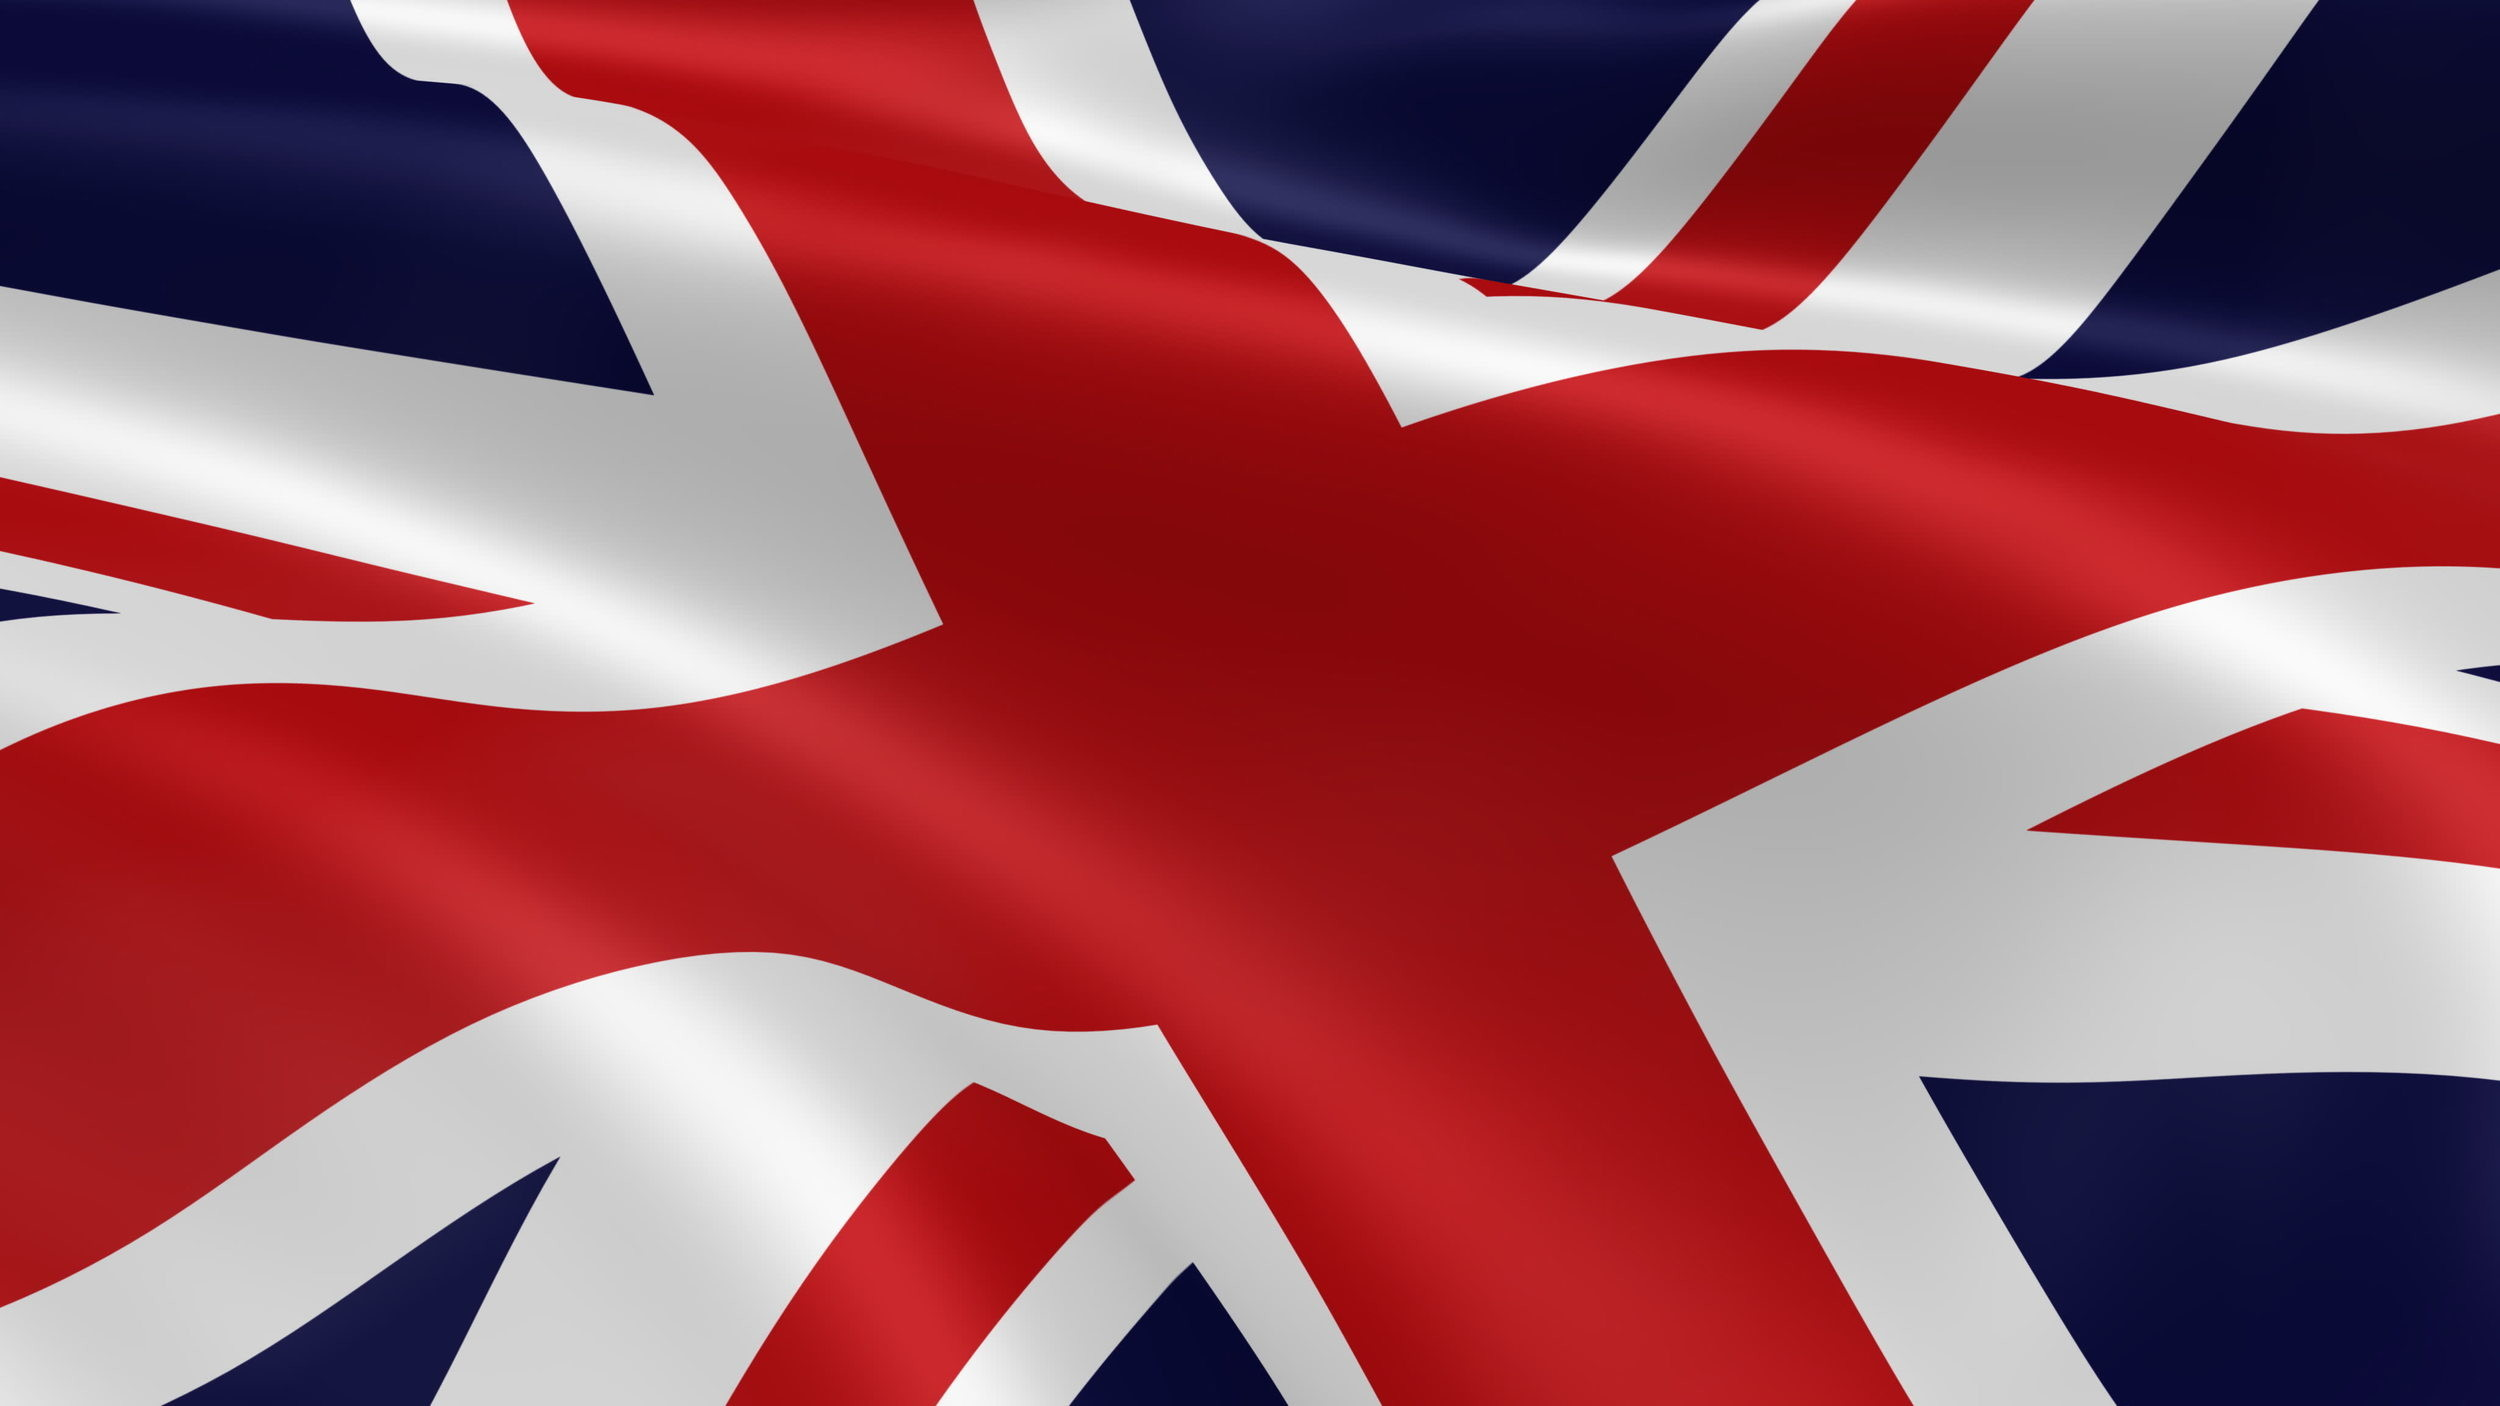 Uk Flag Wallpaper 71 Images